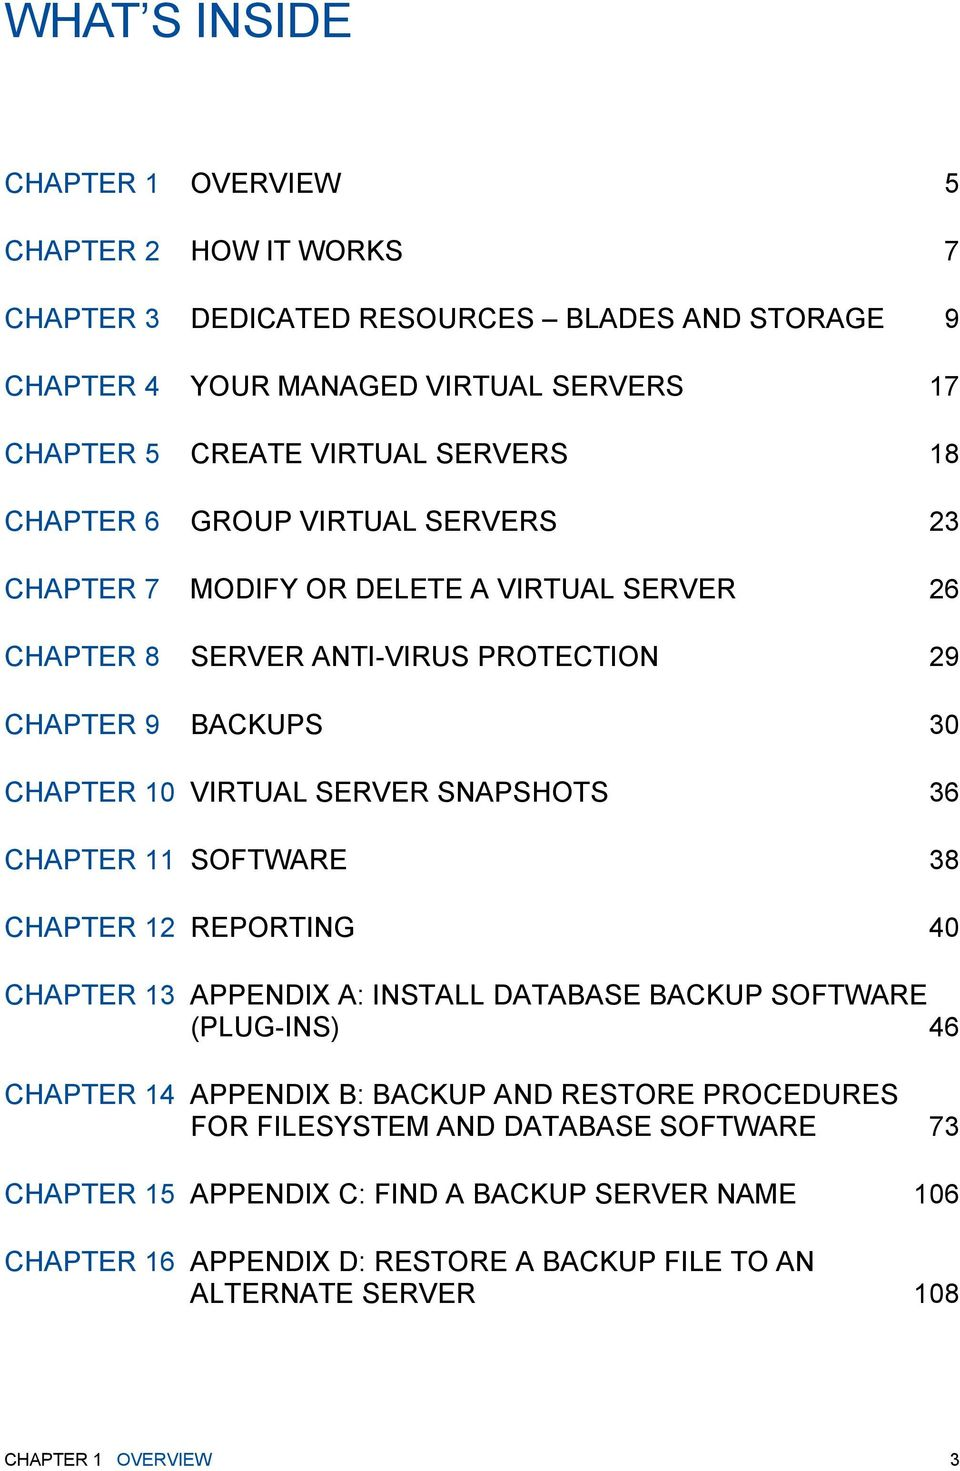 SNAPSHOTS 36 CHAPTER 11 SOFTWARE 38 CHAPTER 12 REPORTING 40 CHAPTER 13 APPENDIX A: INSTALL DATABASE BACKUP SOFTWARE (PLUG-INS) 46 CHAPTER 14 APPENDIX B: BACKUP AND RESTORE